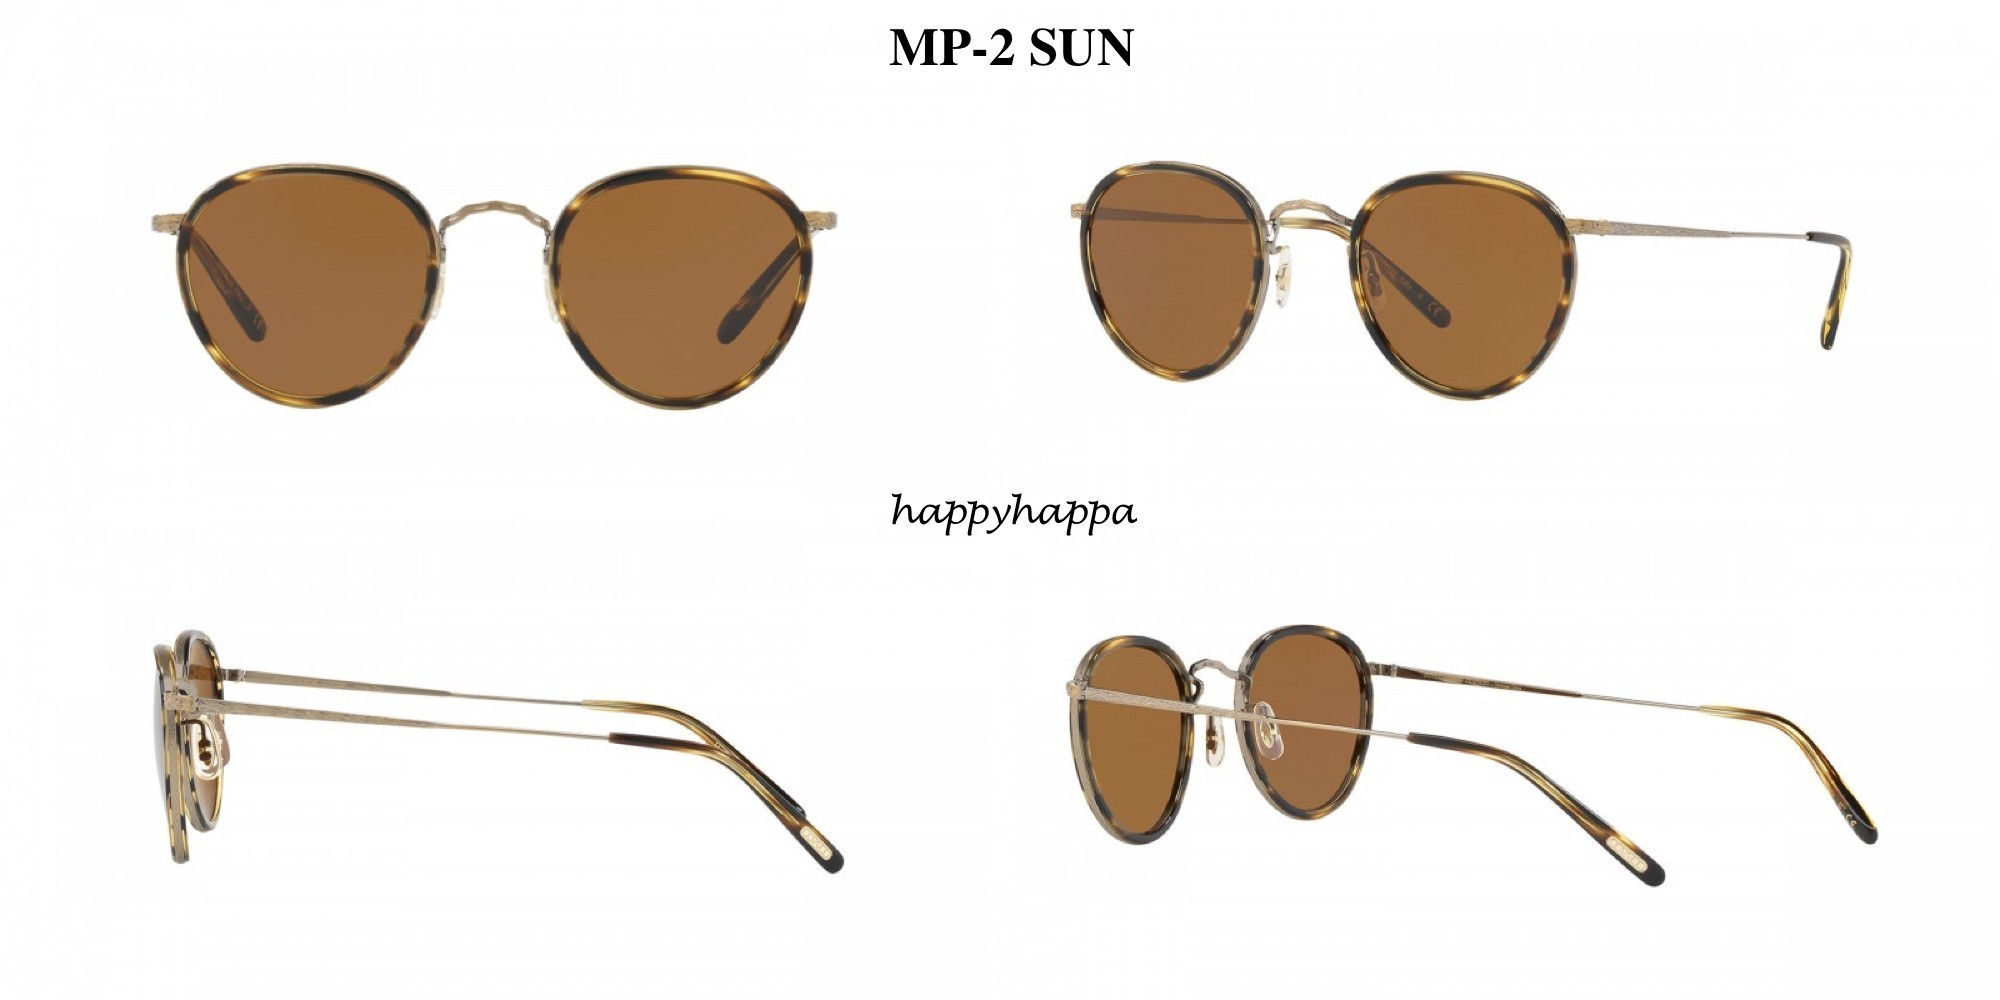 【Oliverpeoples】MP-2 SUN (AG/Cocobolo + Cosmik Tone Glass)